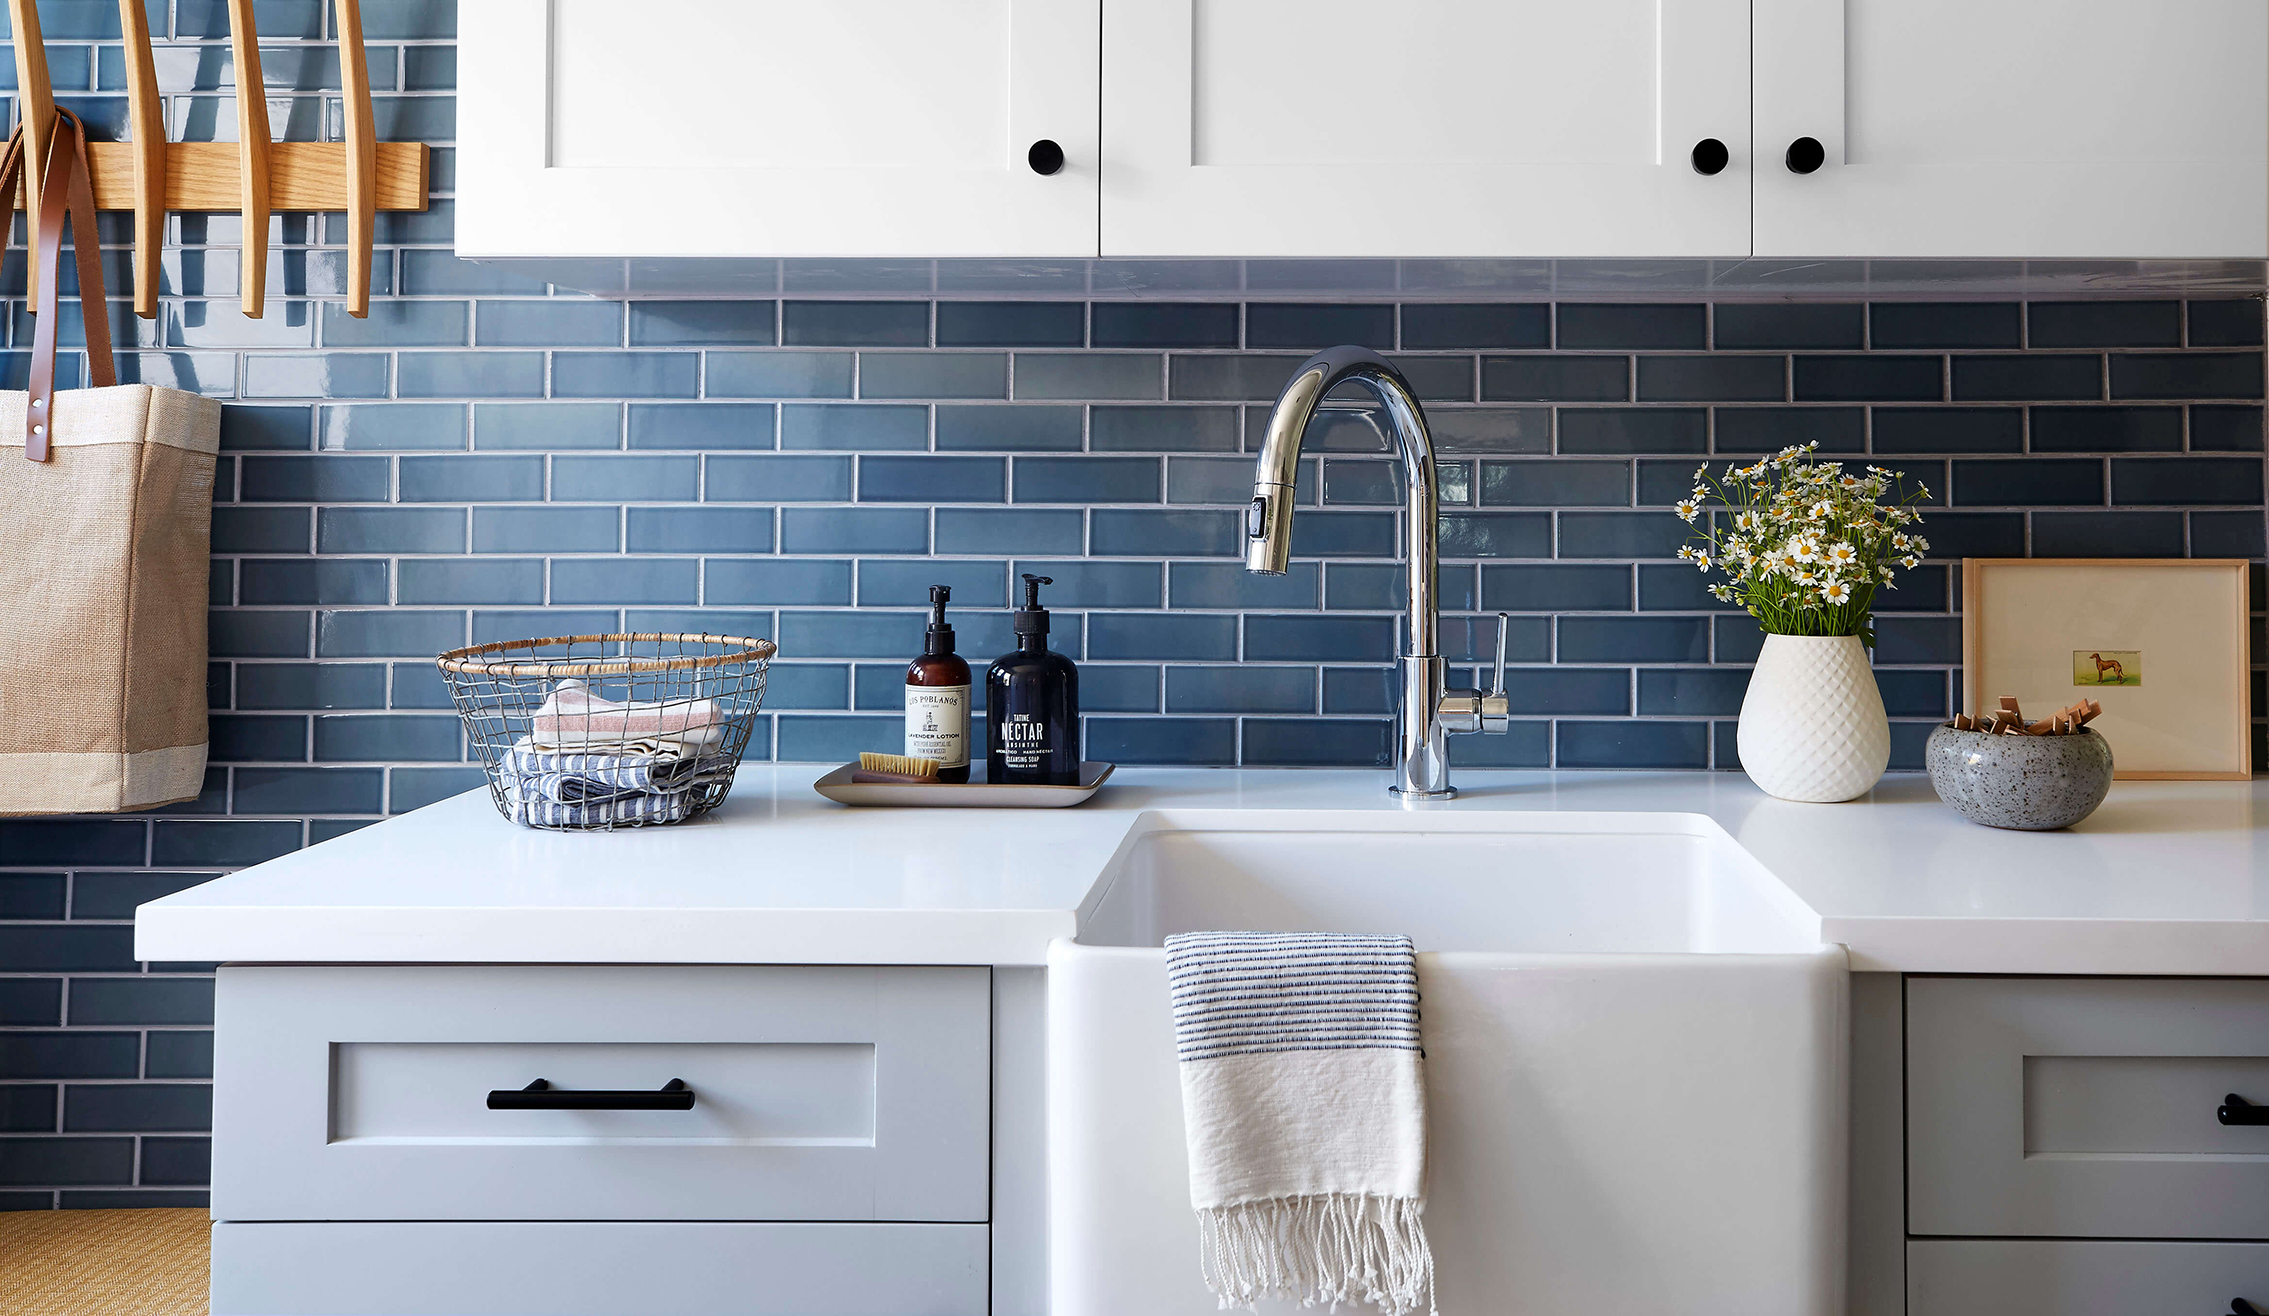 Laundry room ocean blue tile backsplash interior design by Ginny Macdonald Design